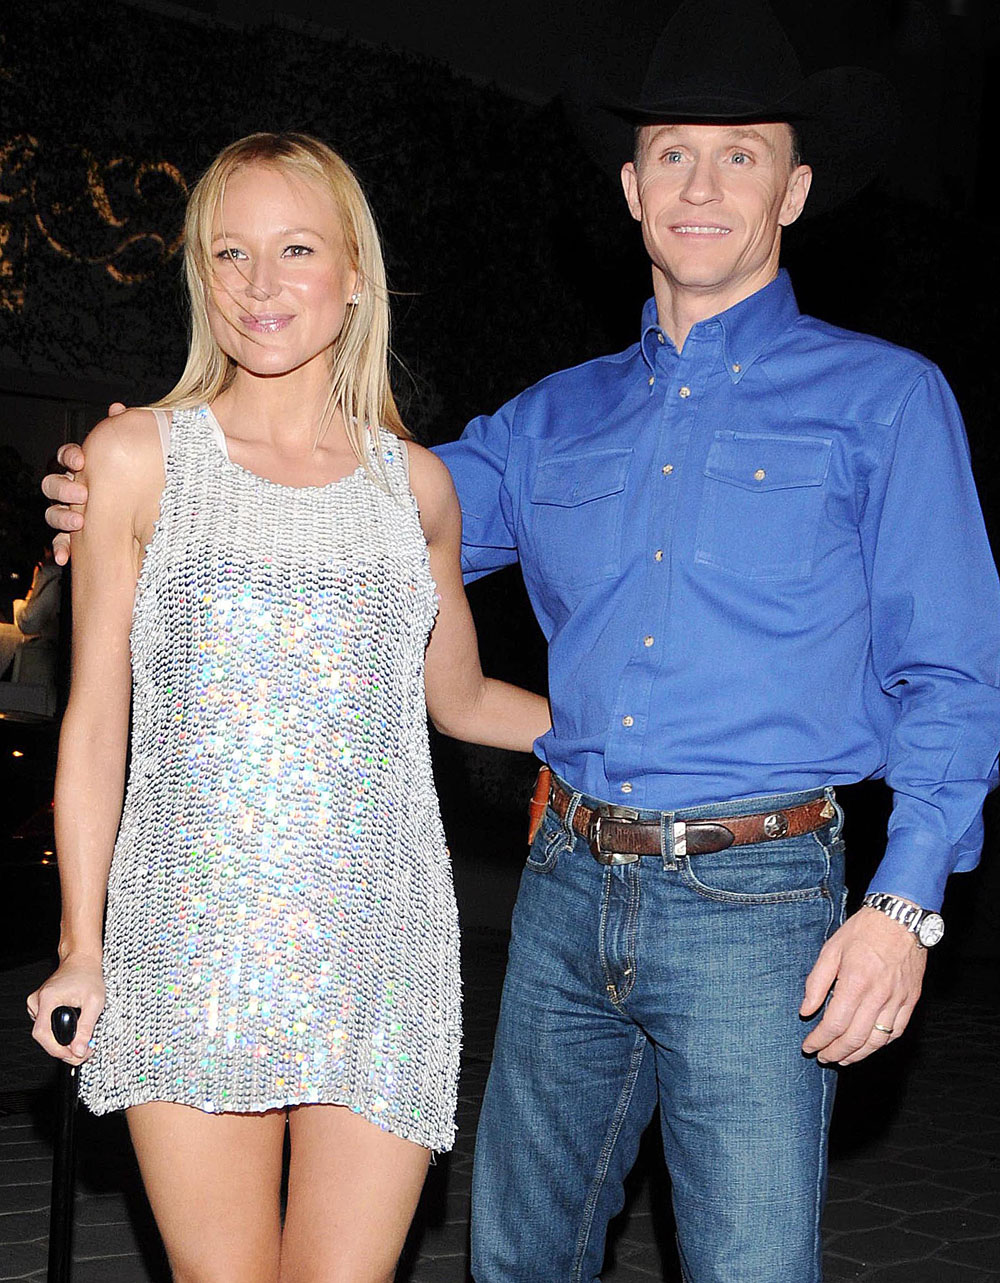 was ty murray dating paige when married